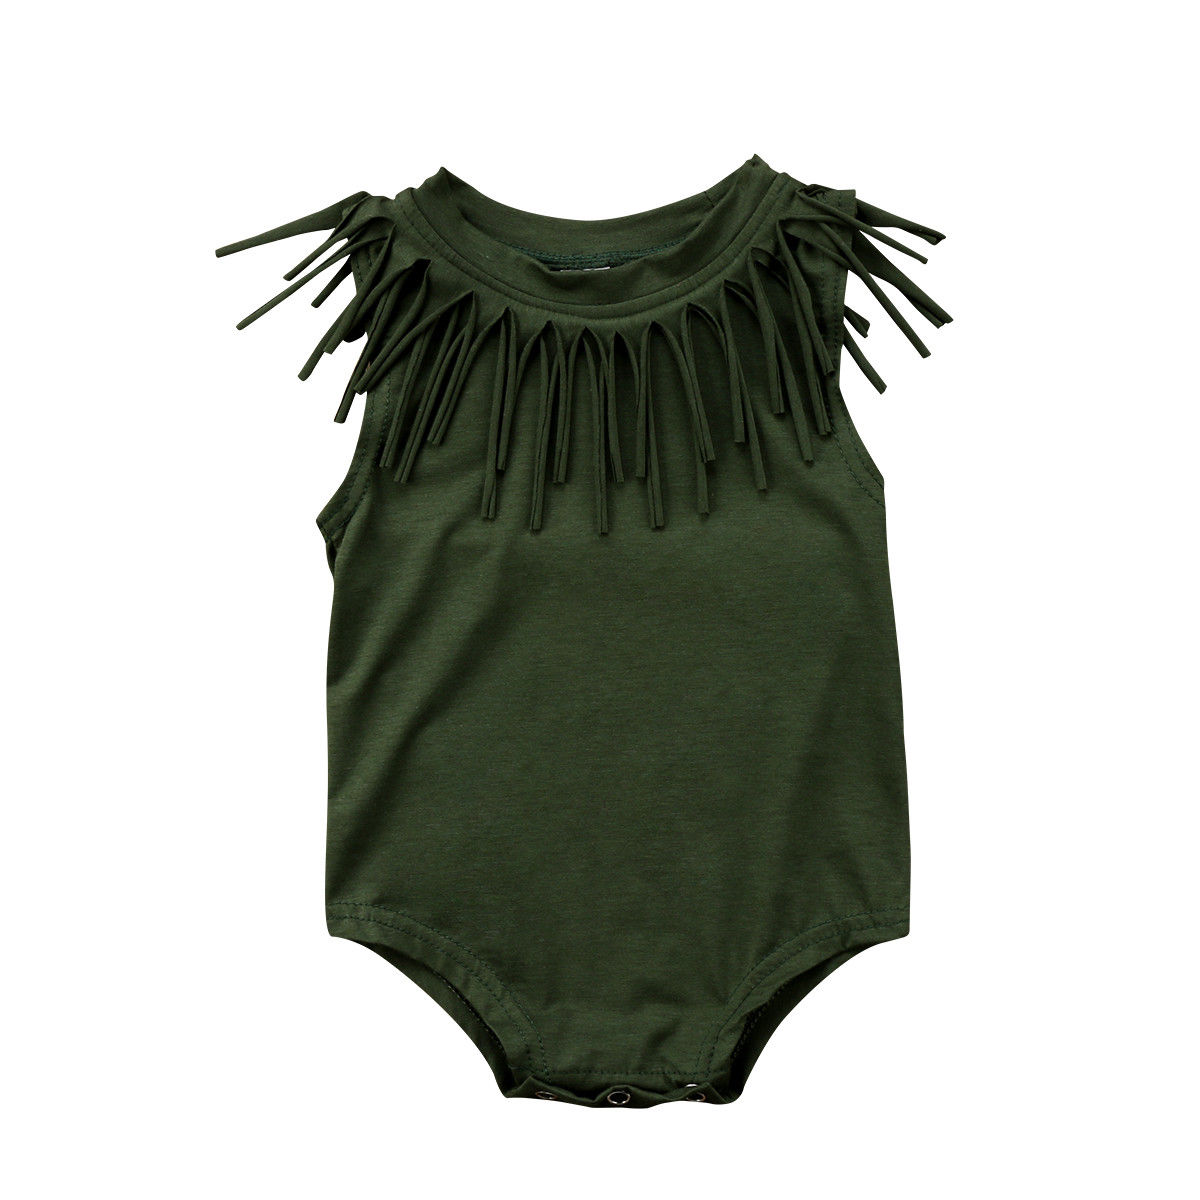 Baby Girls Boy Cute Toddler Black/Green  Clothes Jumpsuit Bodysuit Outfits